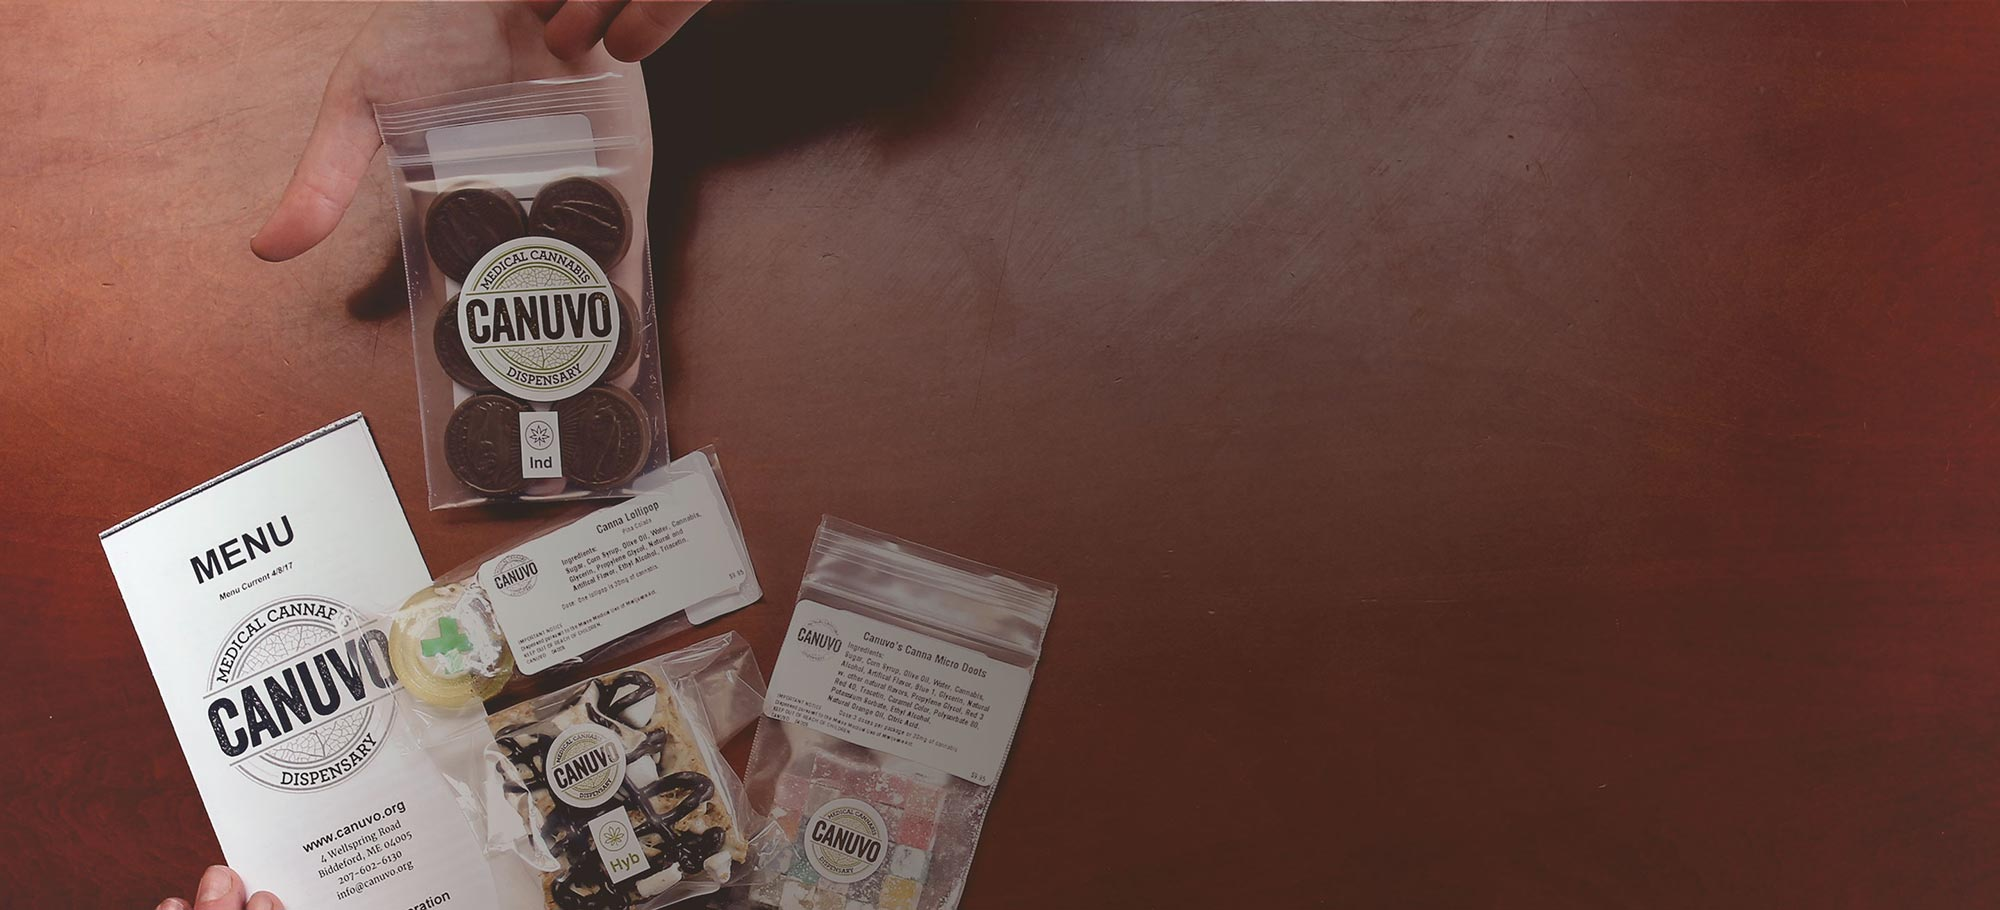 Cannabis Infused Edibles at Canuvo